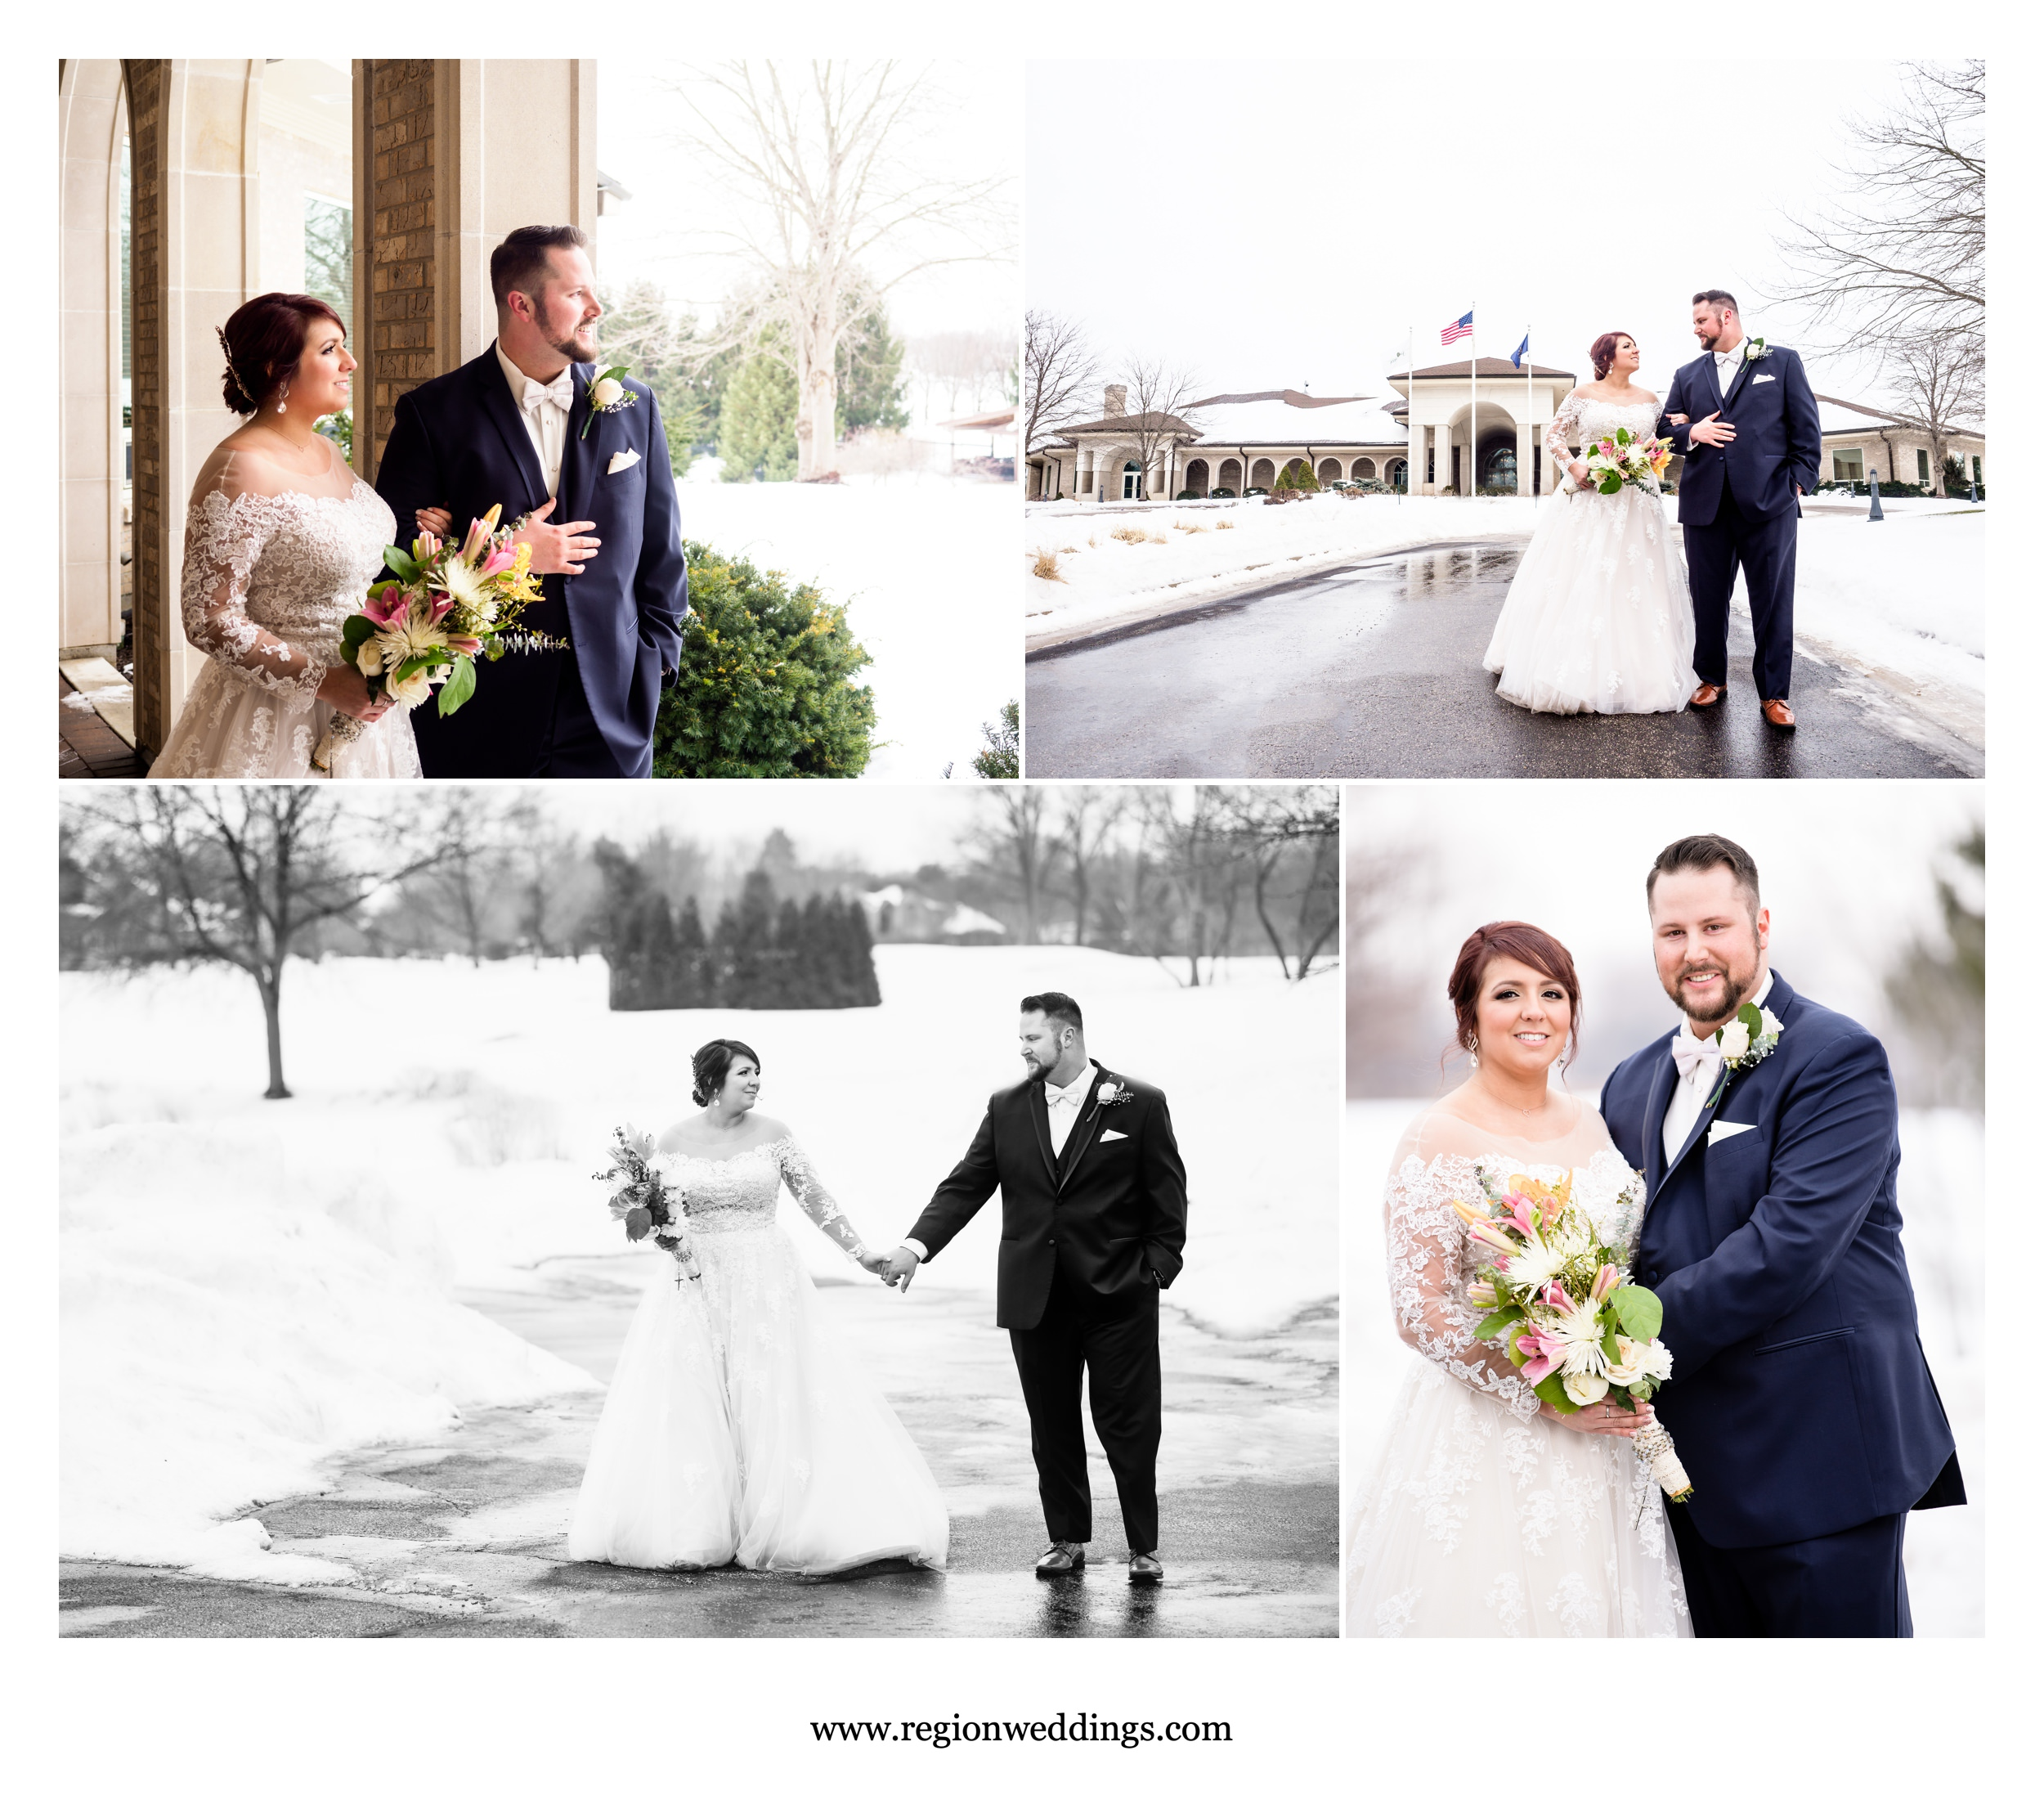 Winter wedding photos at Sand Creek Golf Course in Chesterton, Indiana.